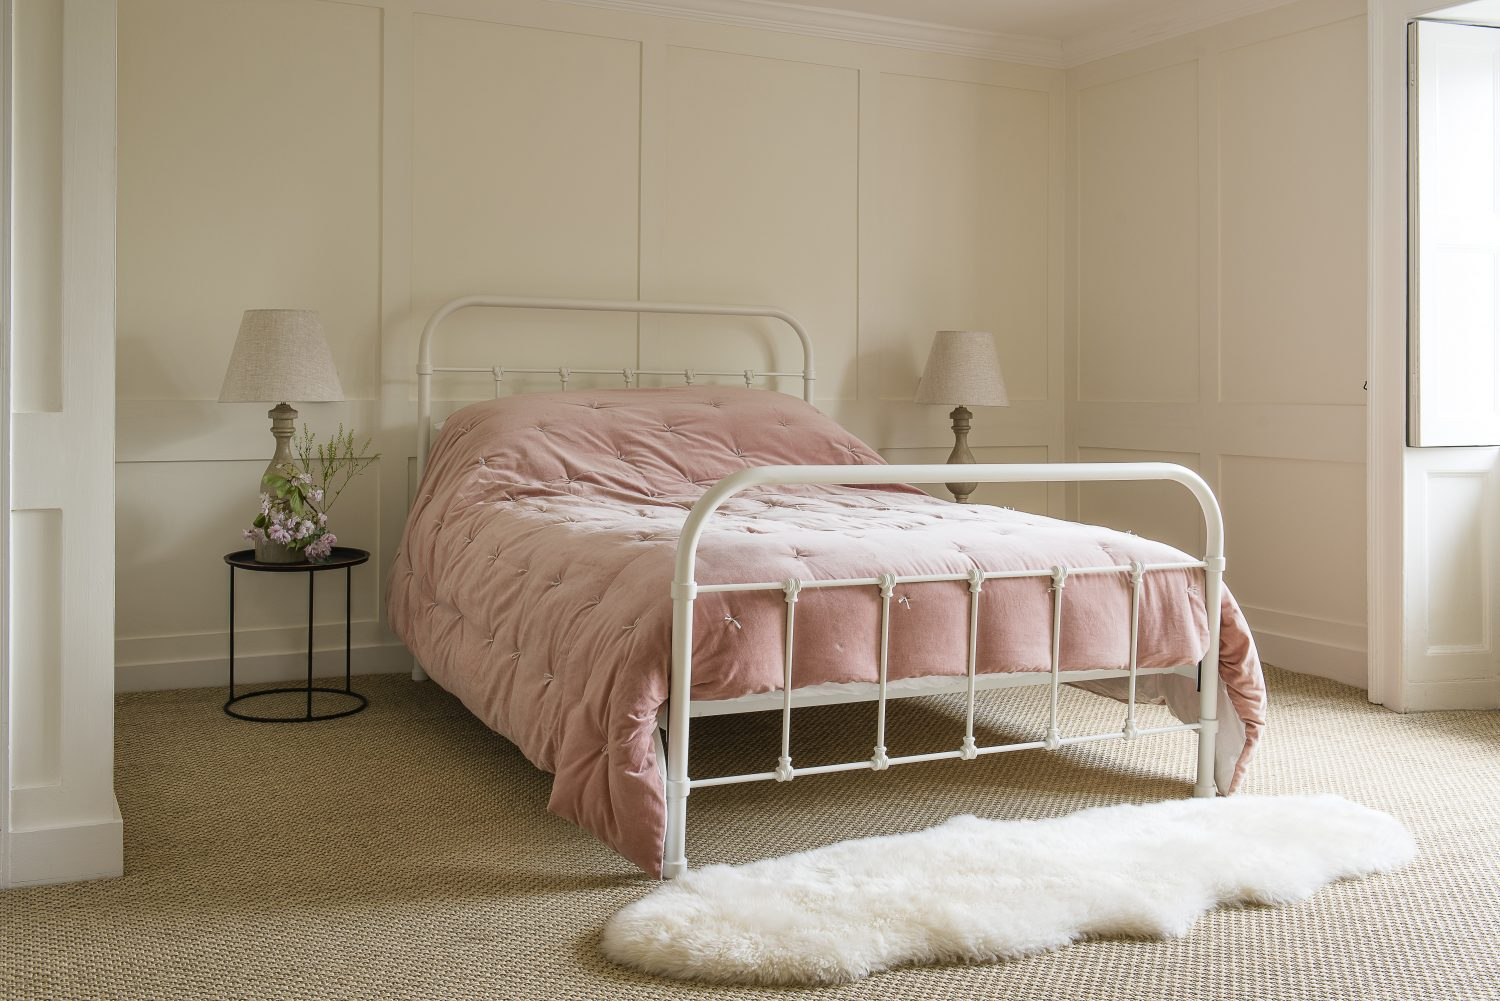 A pale pink Graham & Green bedspread in the main bedroom is offset by yellows and reds